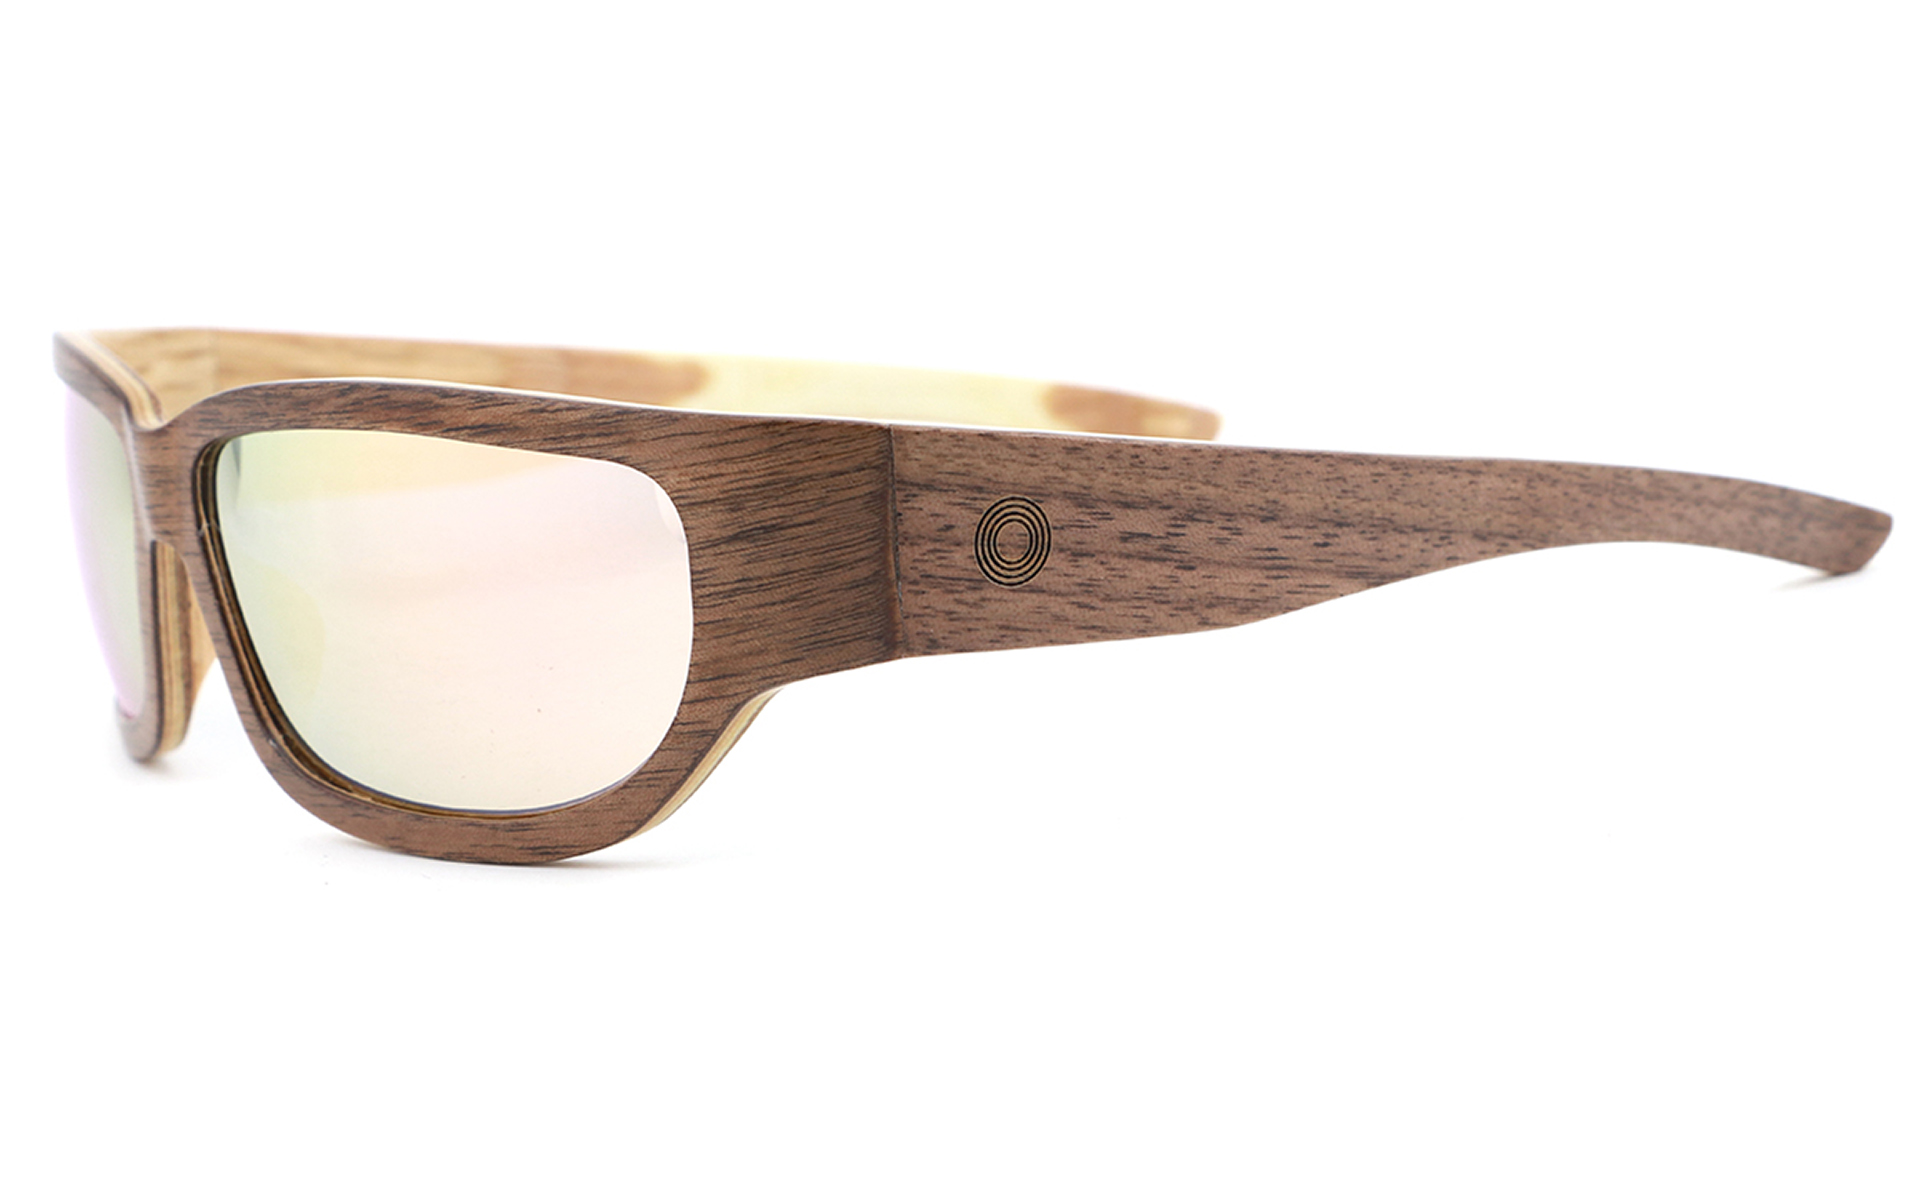 Ola Means Alive Releases Multiple Lines of Sporty, Elegant and Sustainable Sunglasses